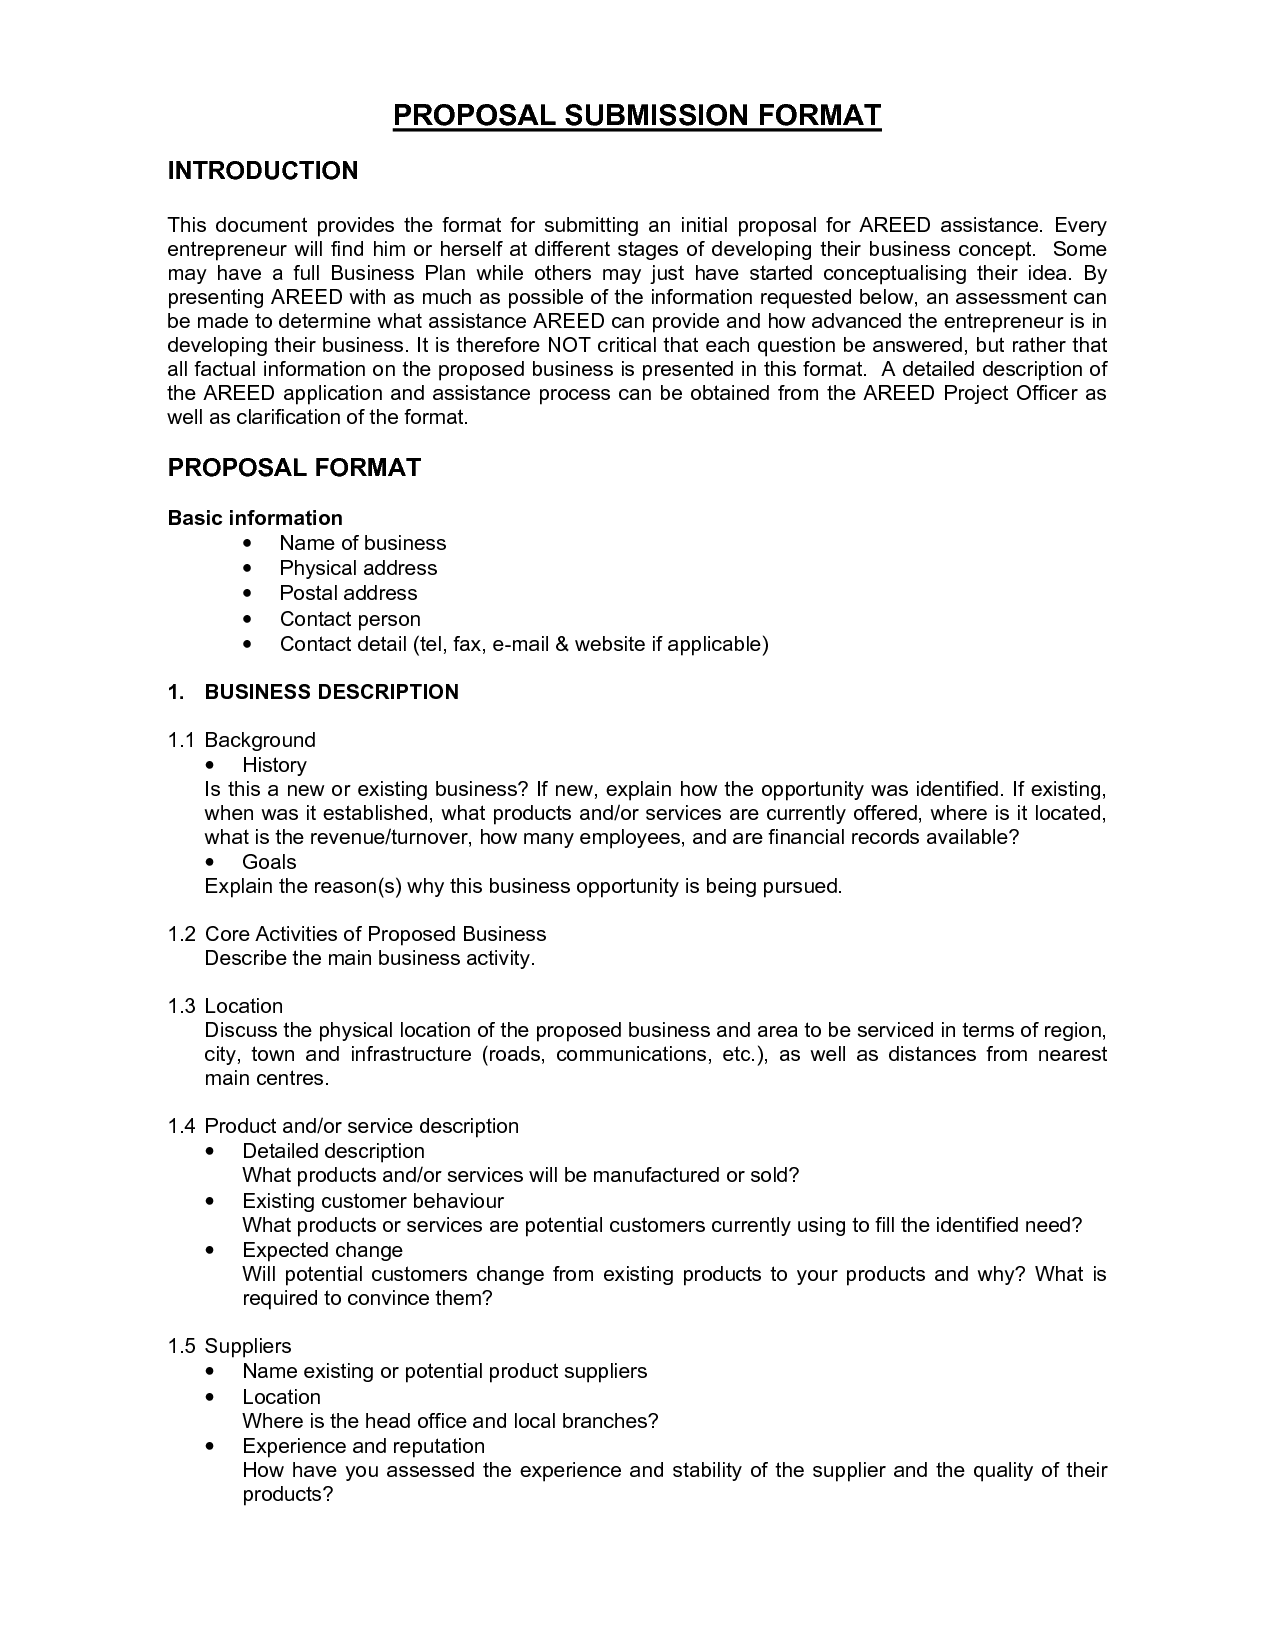 Business proposal template word 16+ free sample, example, format.